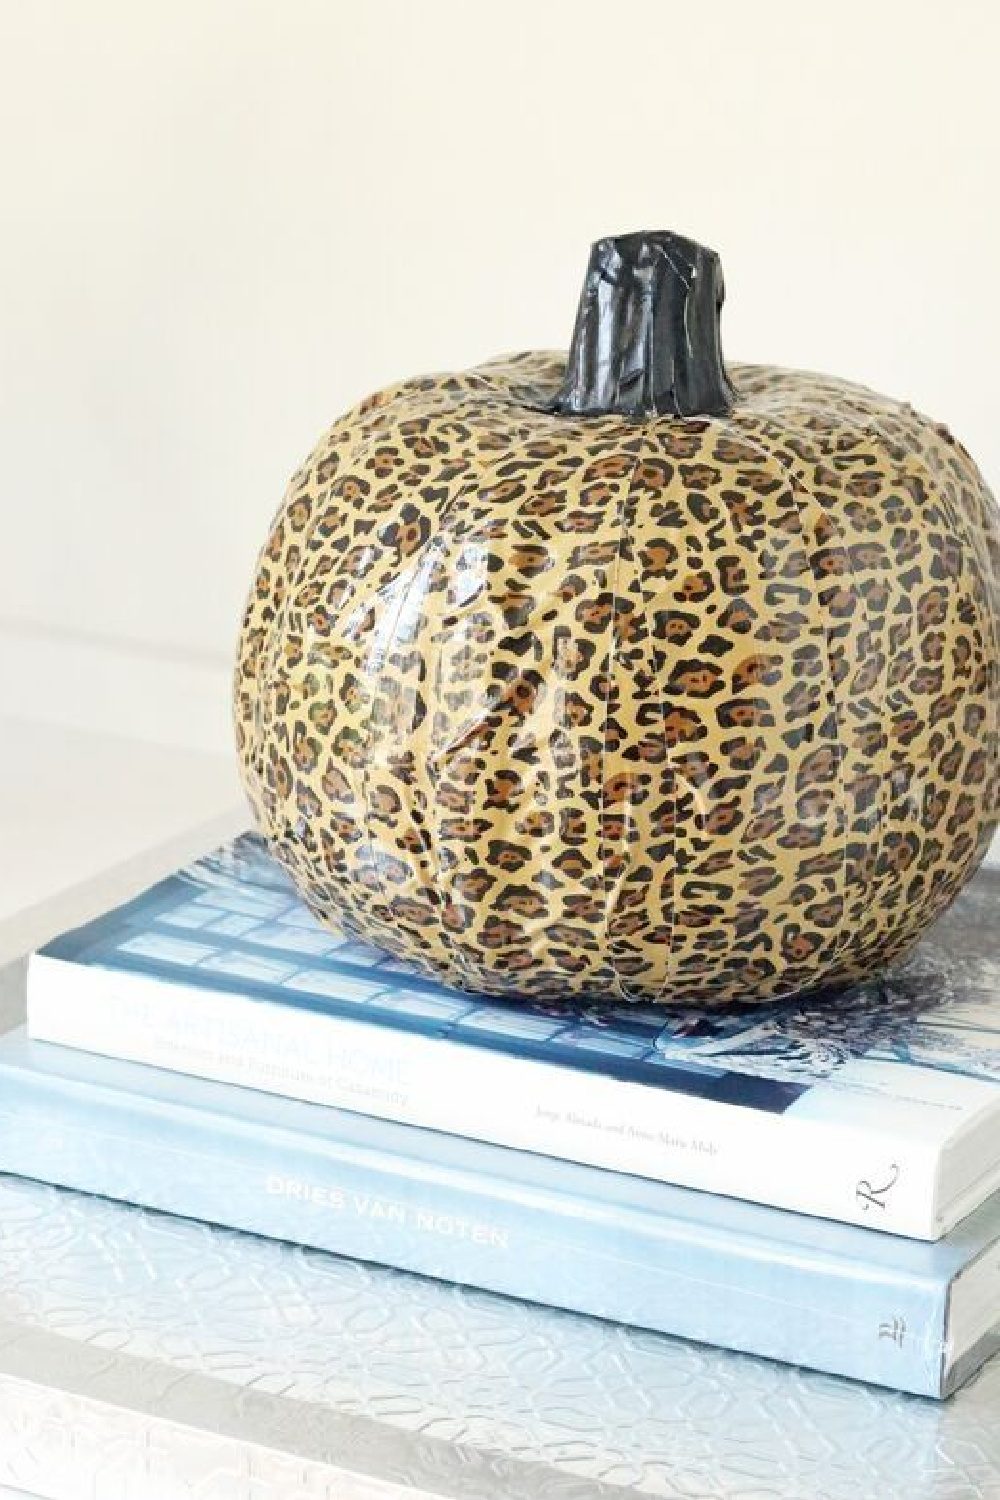 Leopard pumpkin DIY craft with duct tape - Passion for Savings. #fallcrafts #leopard #pumpkincraft #diy